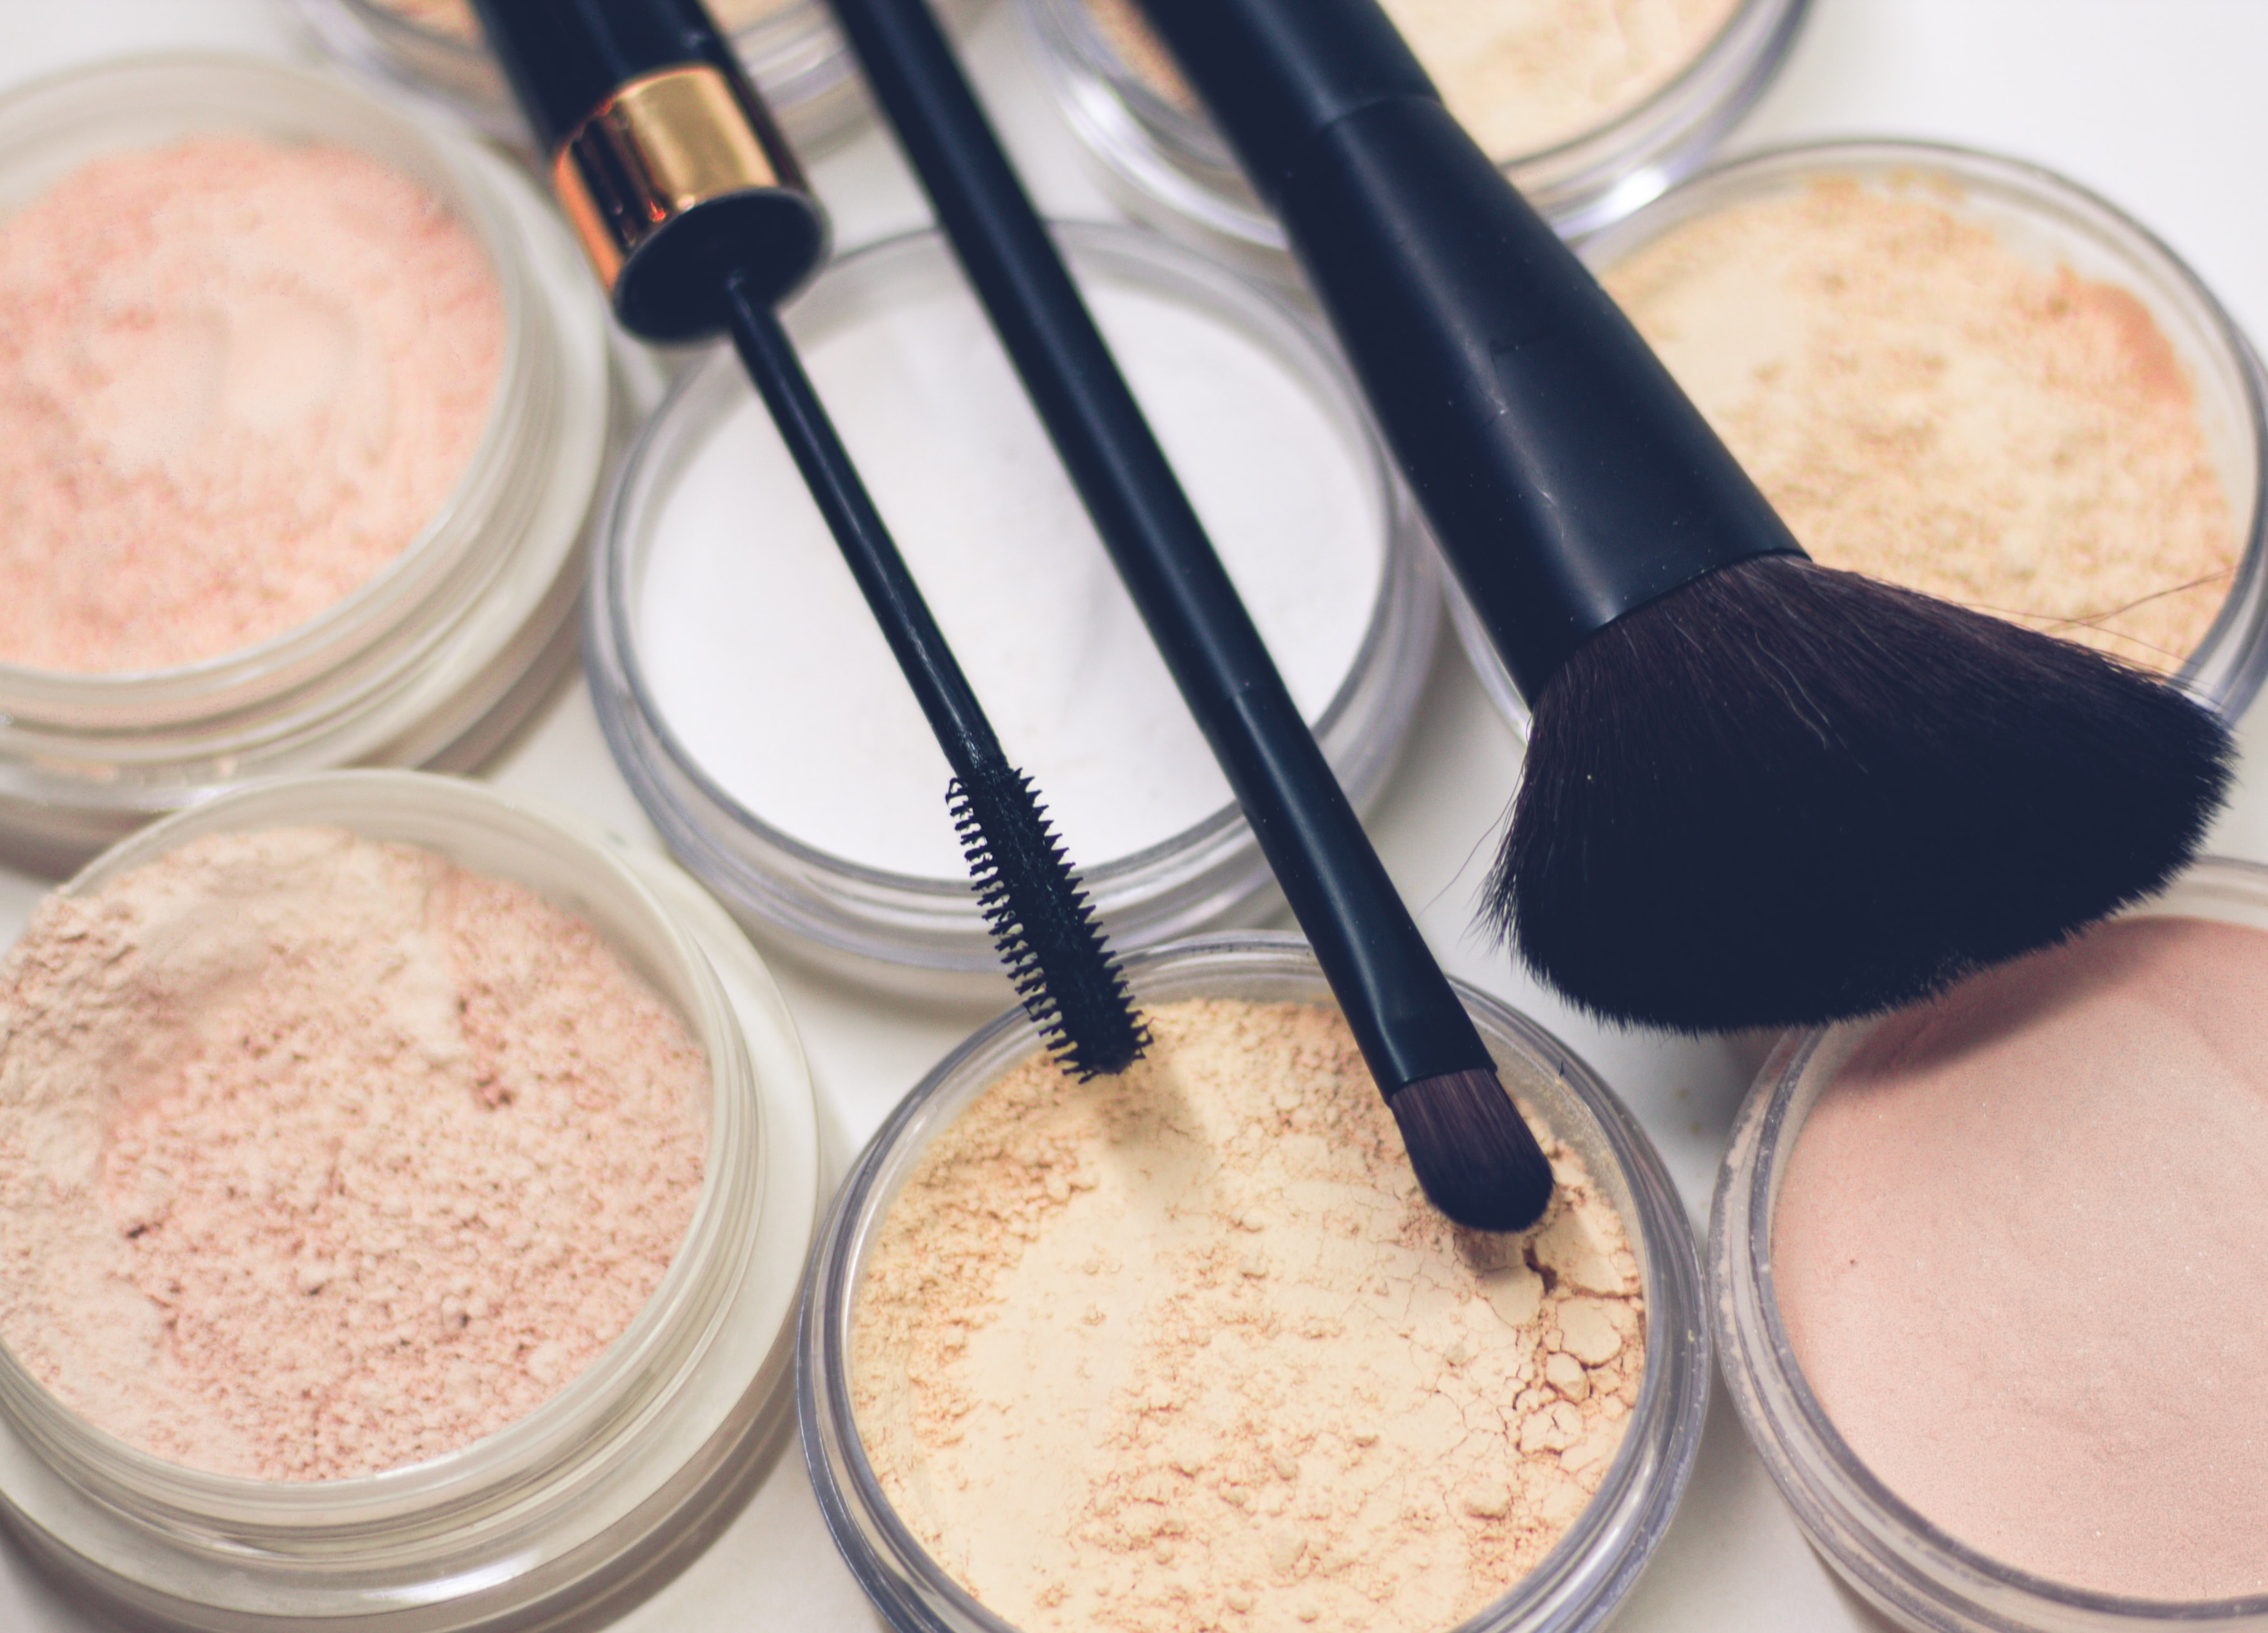 three makeup brushes on top of compact powders